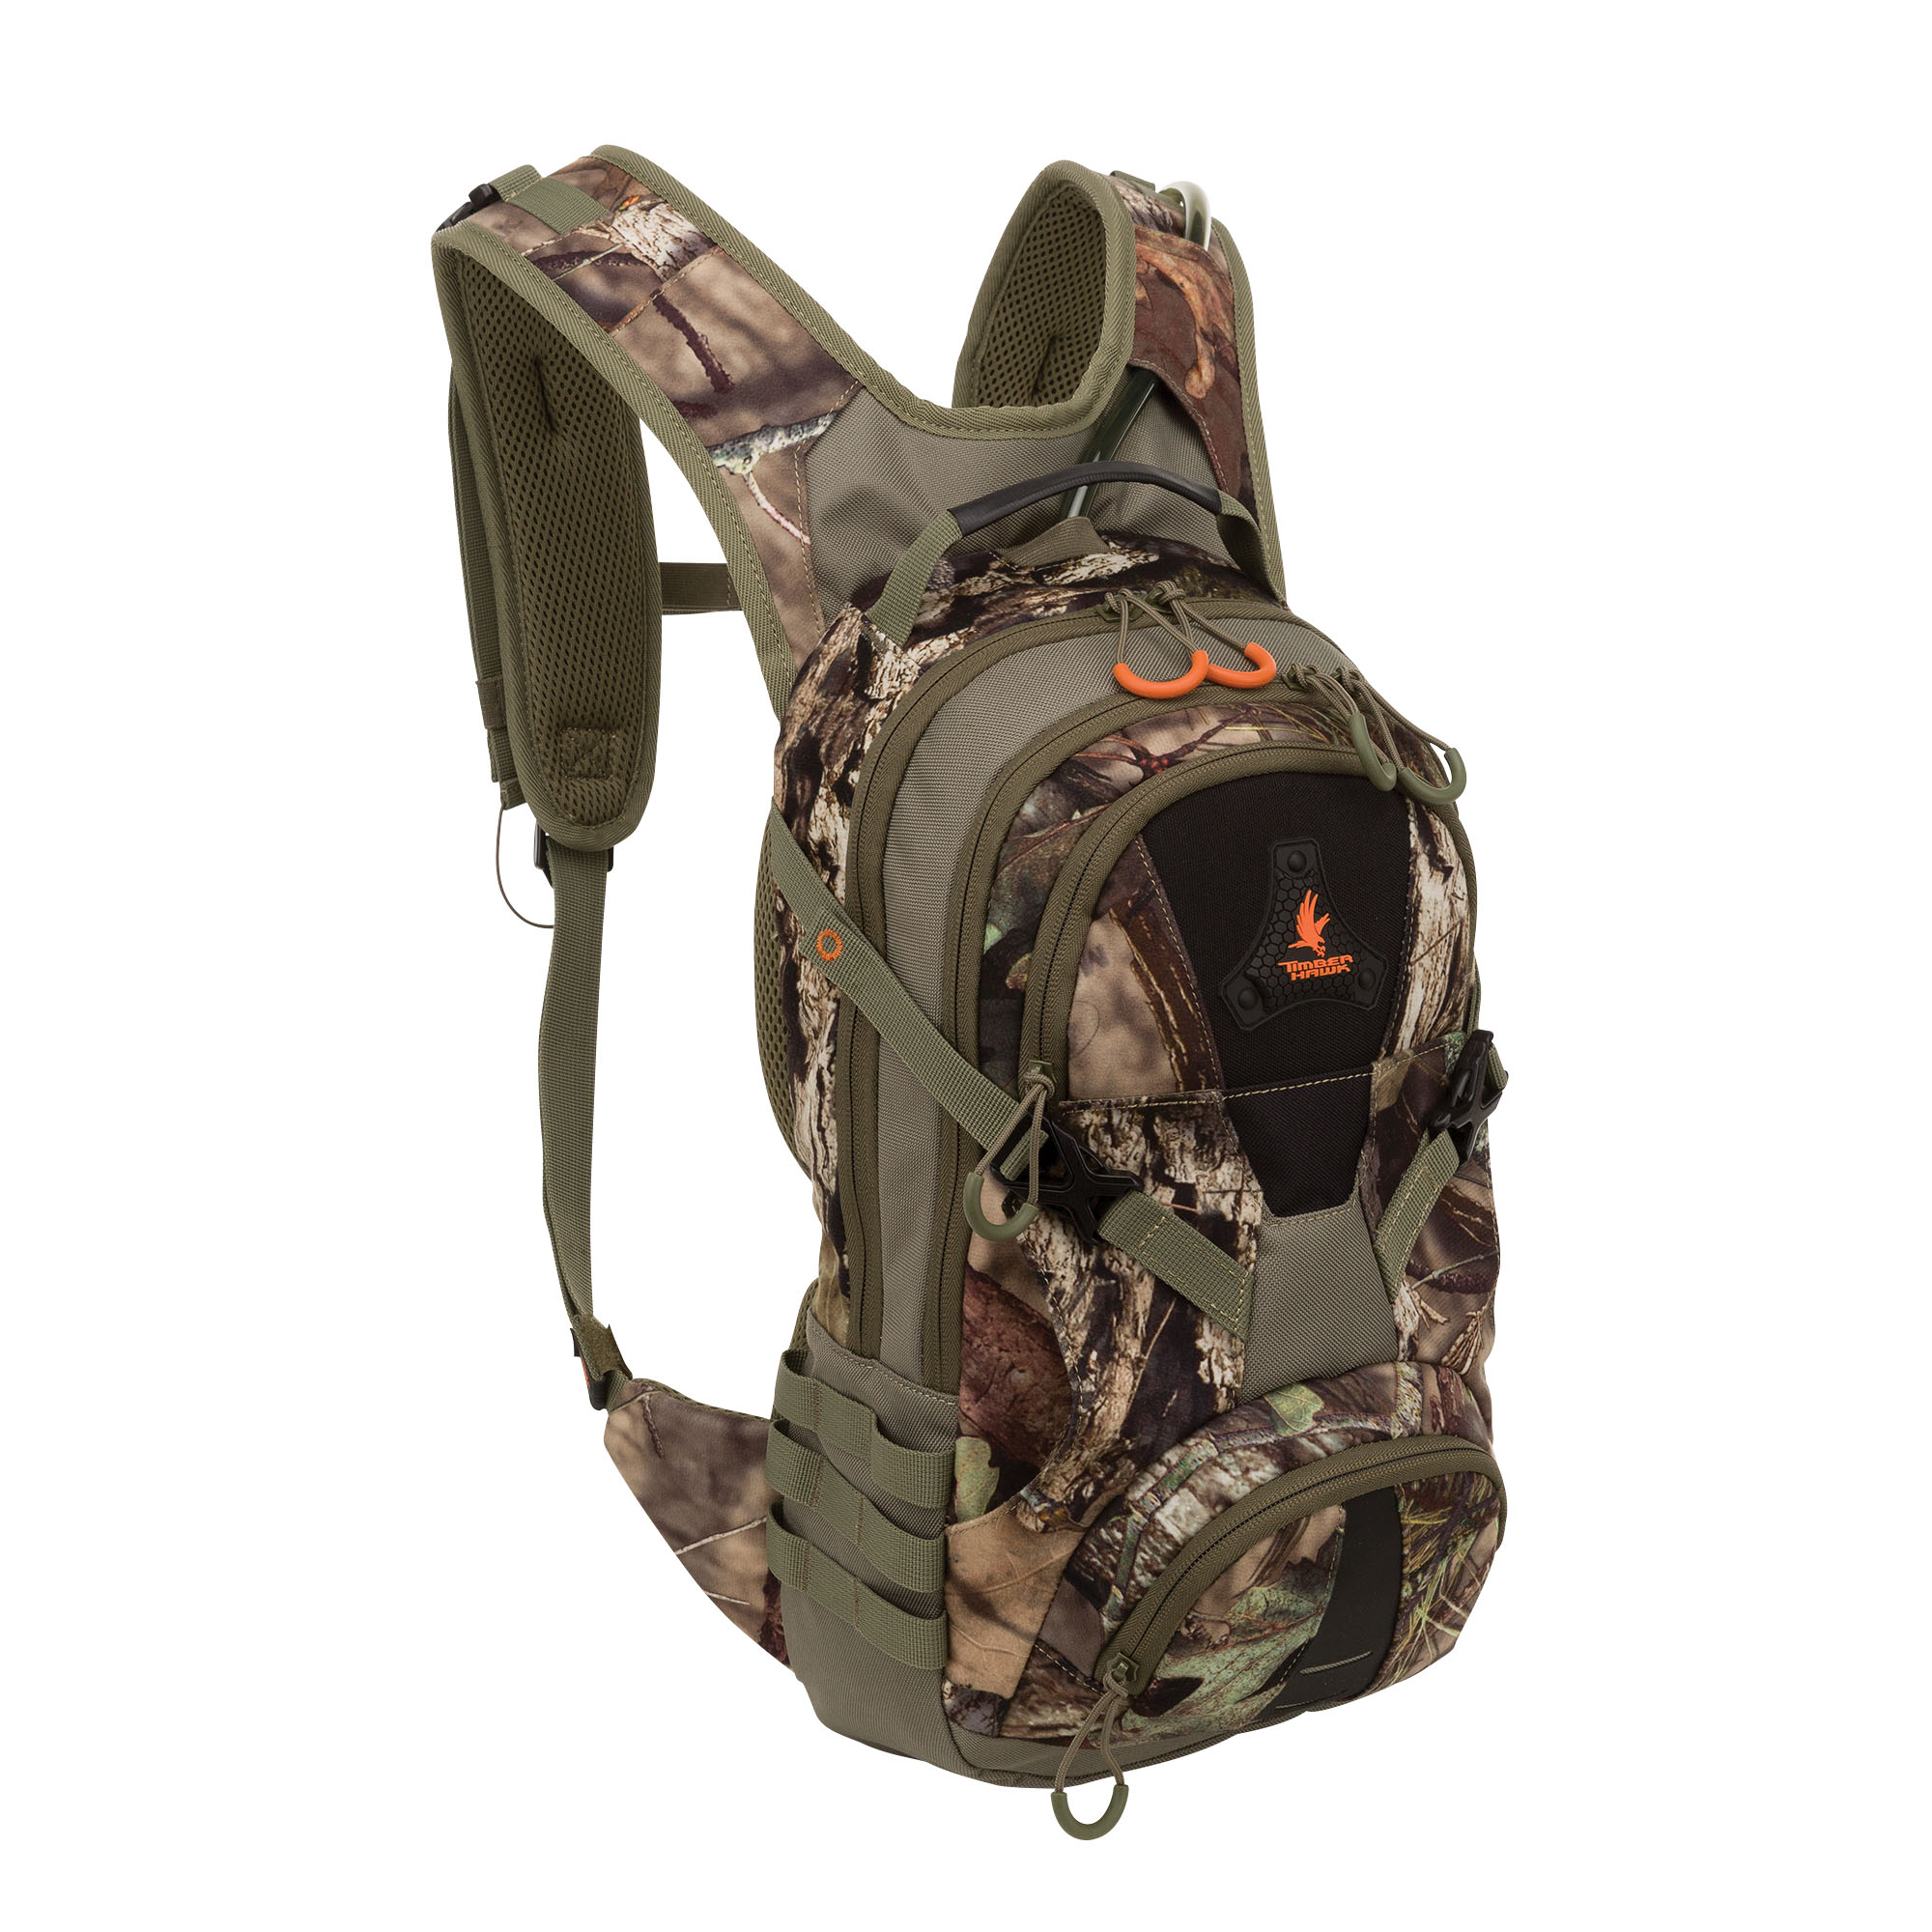 New Hunting Backpack Camouflage Drawstring Soft Water Repellent Light Weight Bag